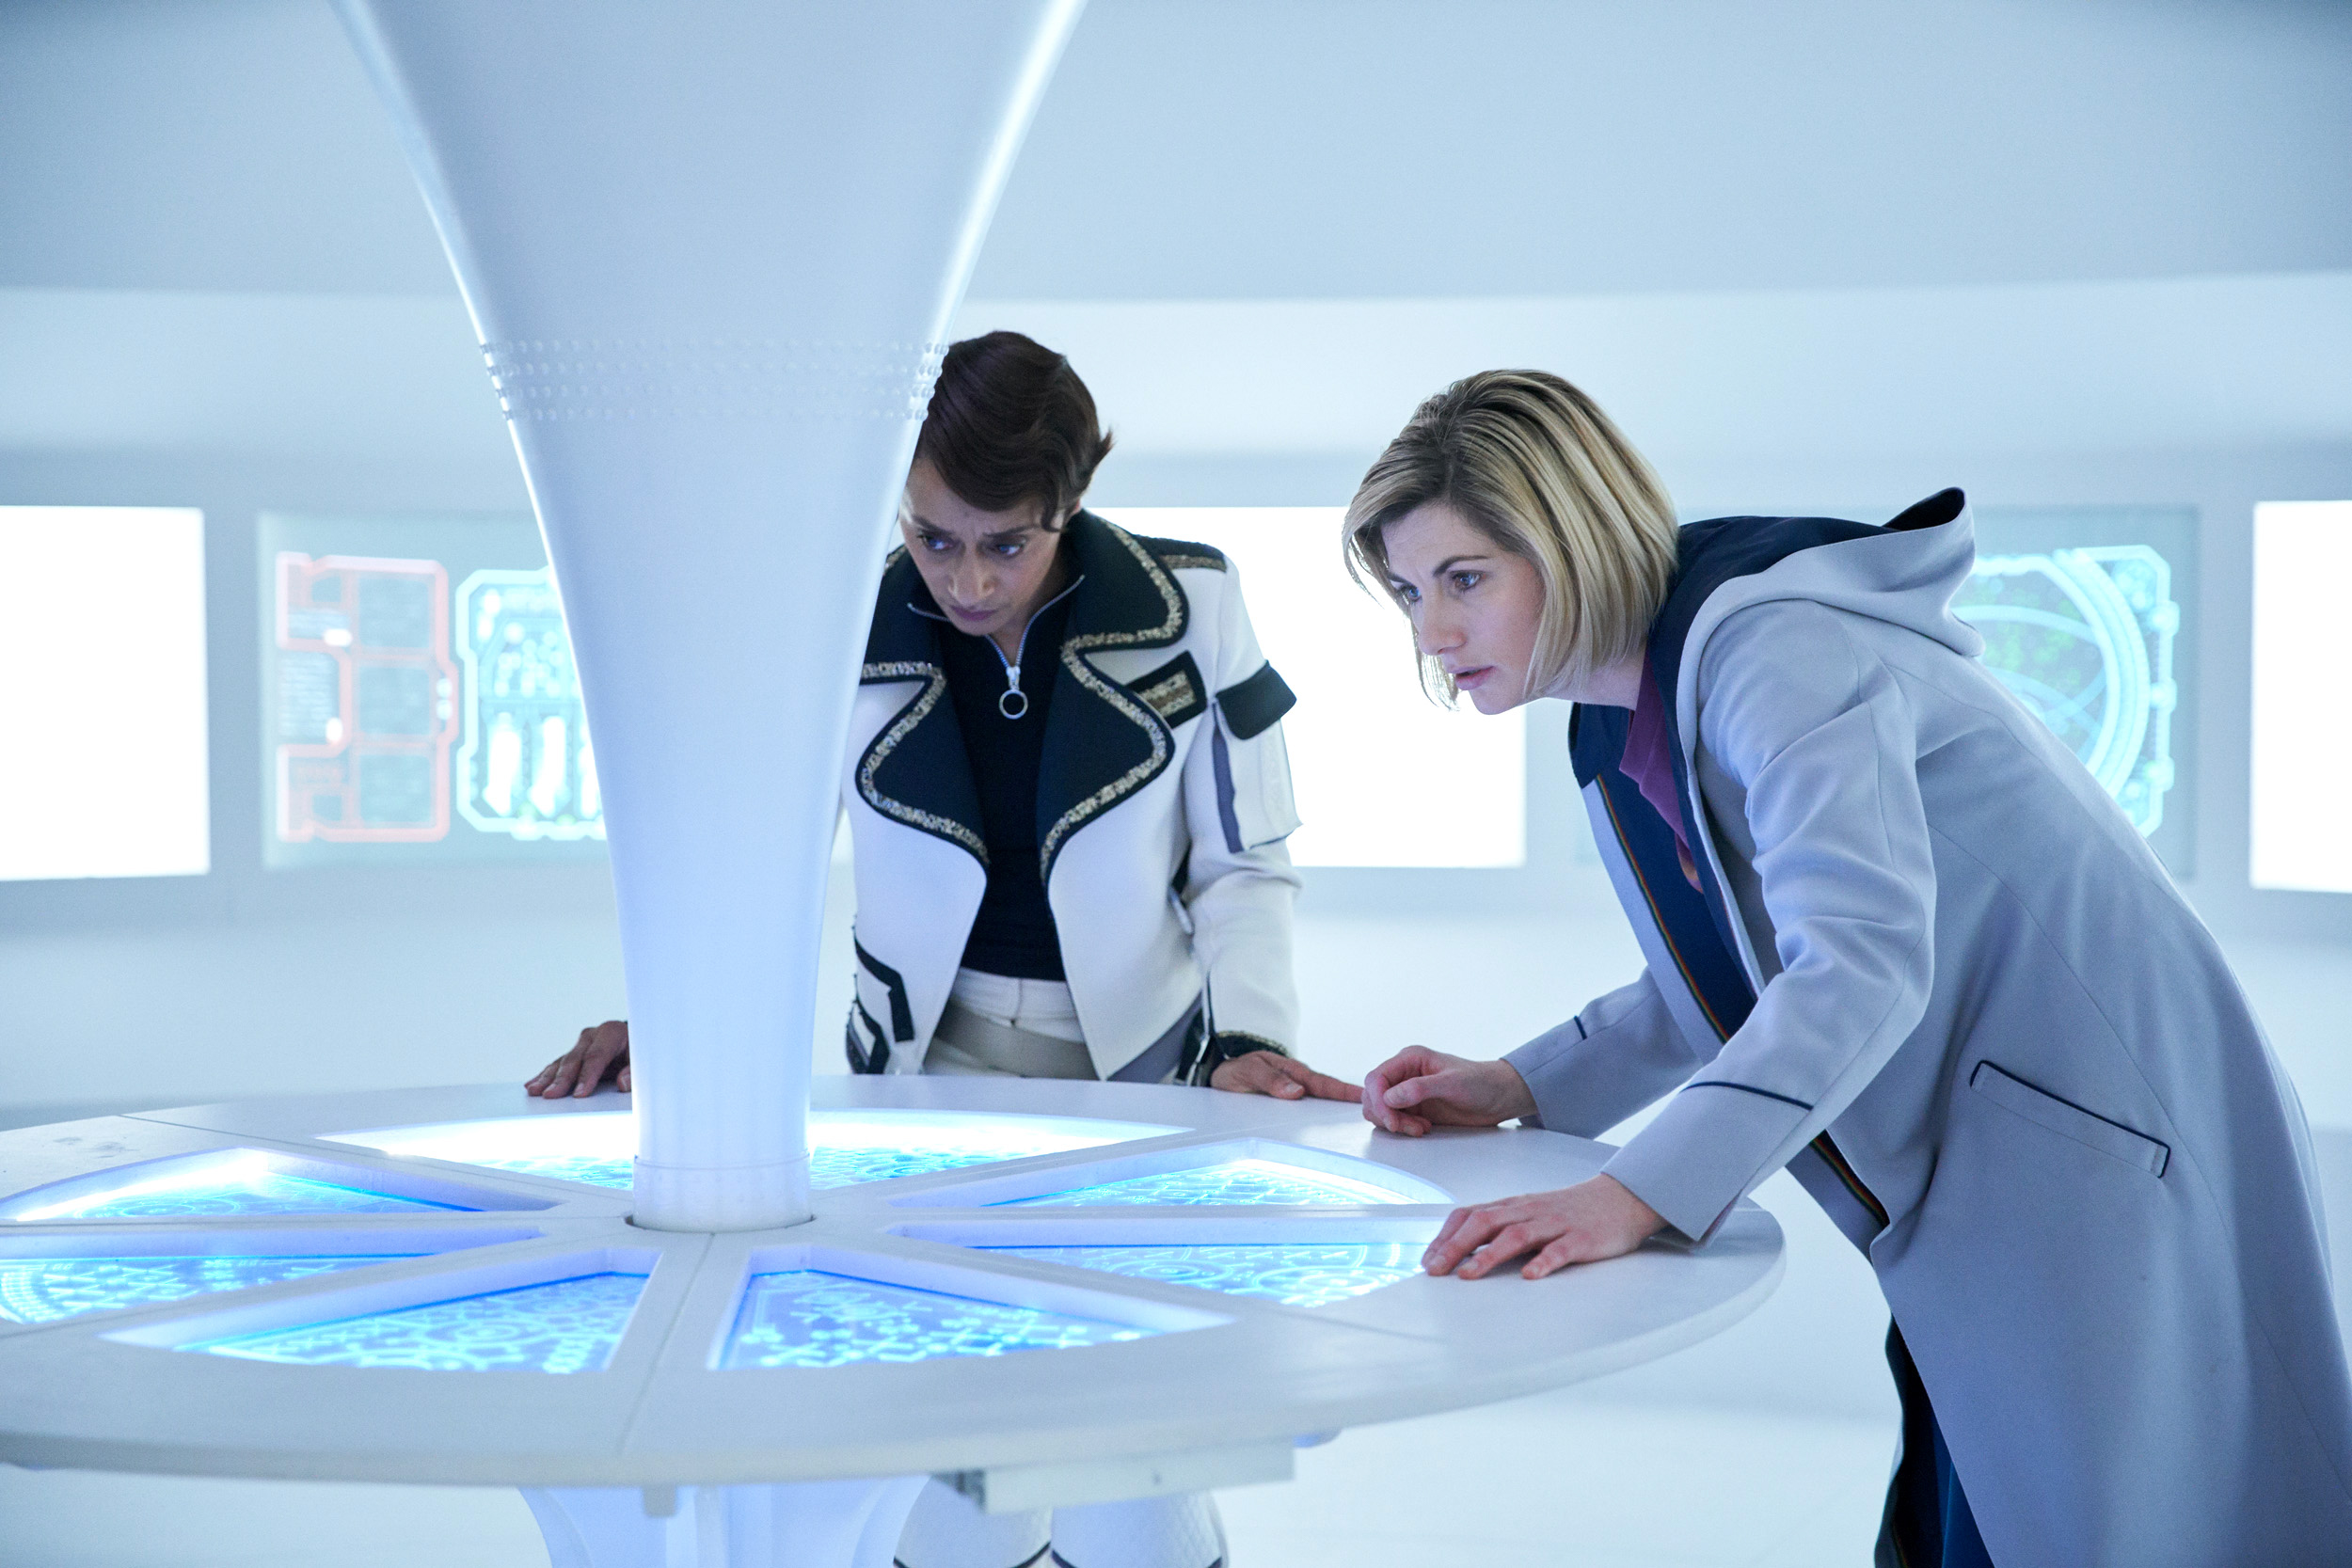 Doctor Who: The Tsuranga Conundrum - Who Is Suzanne Packer